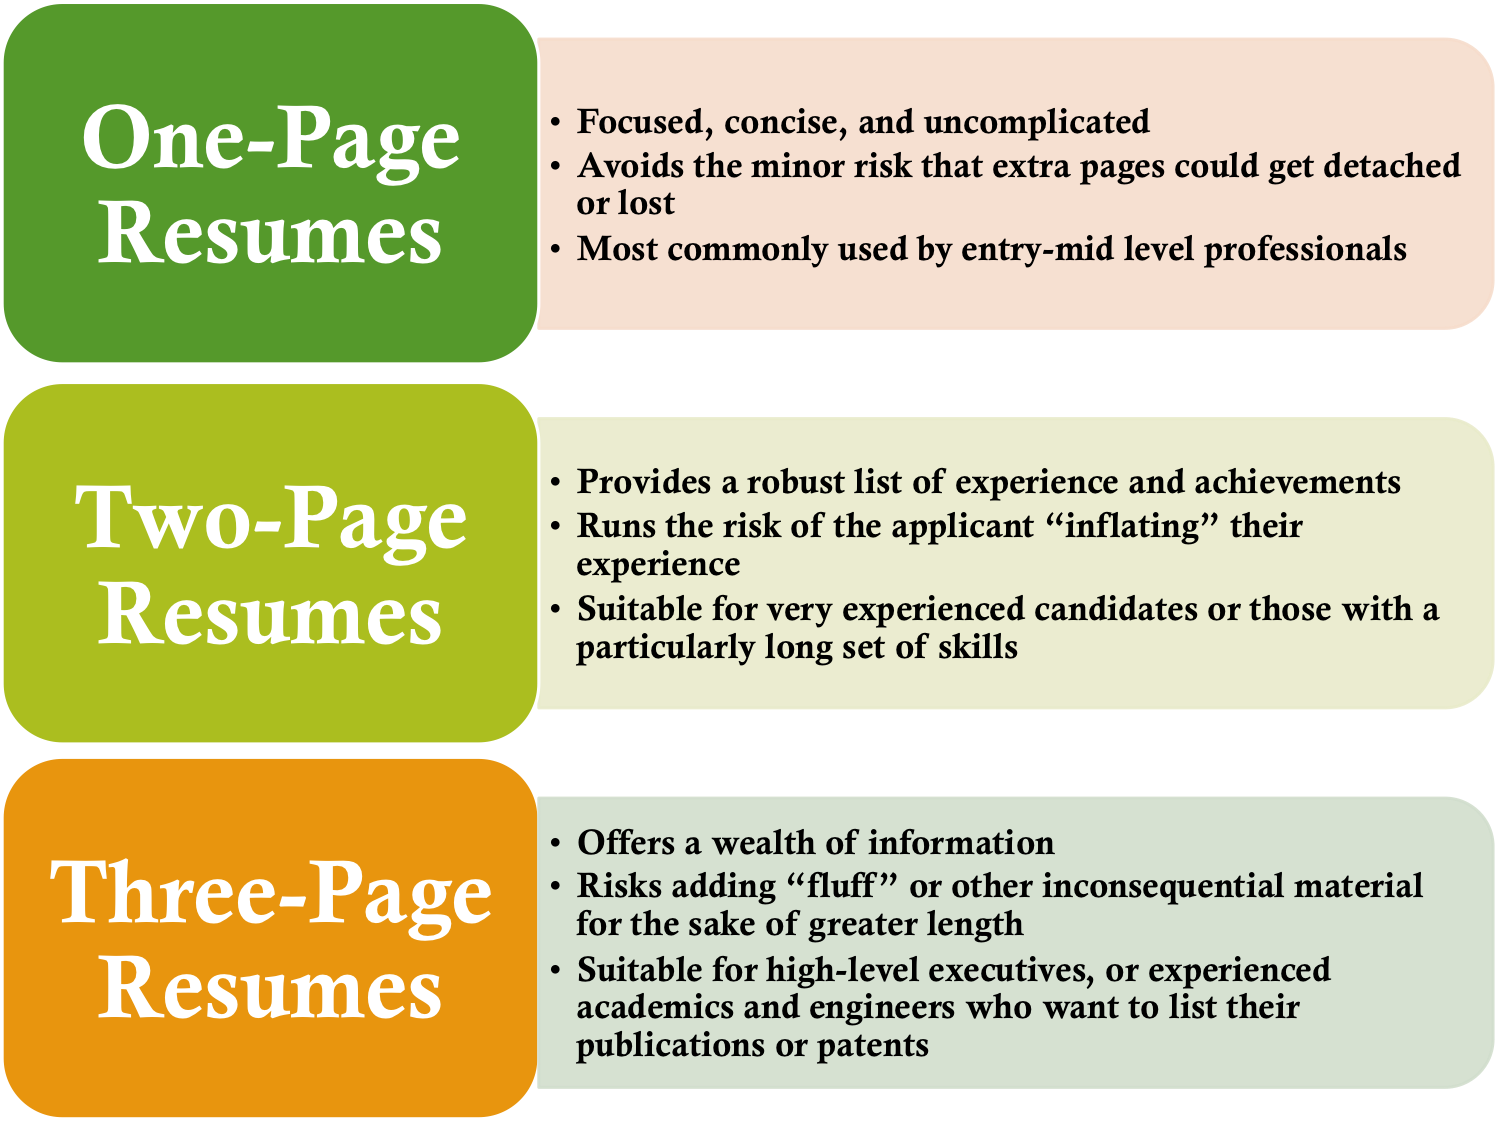 resume Margins Of Resume resume aesthetics font margins and paper guidelines genius ideal length